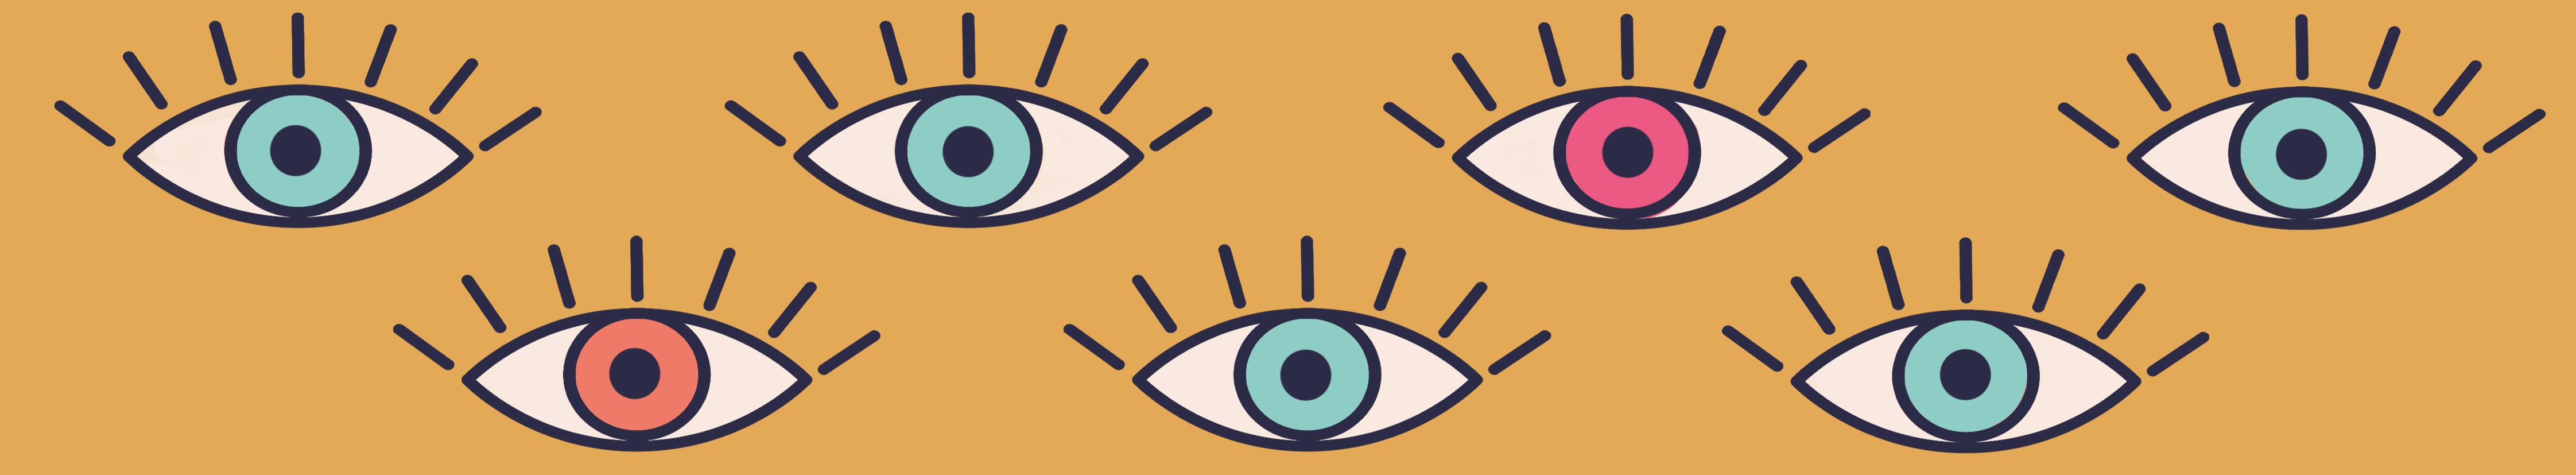 An illustration of 7 eyes on a yellow background.